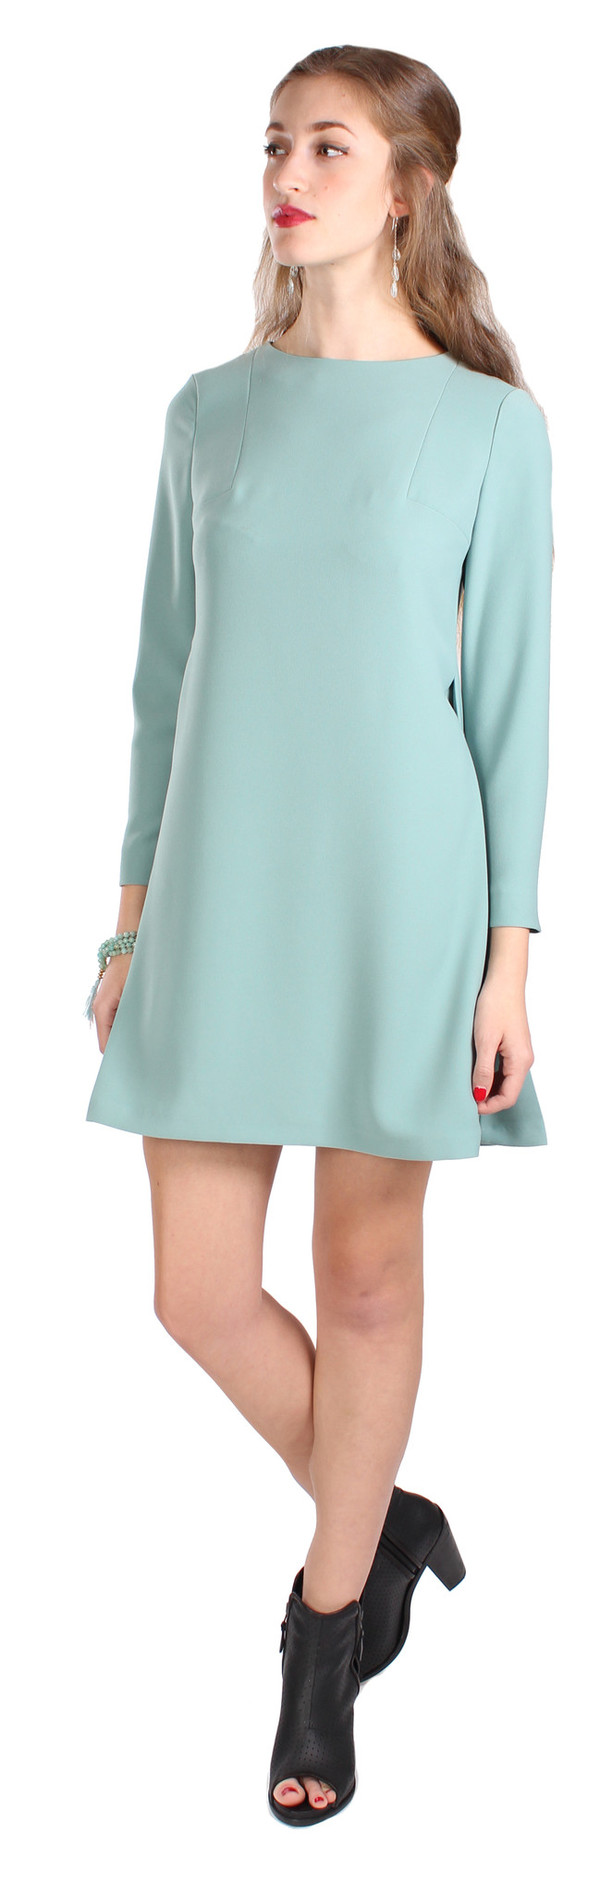 Hoss Intropia 3/4 Zipper Sleeve Dress